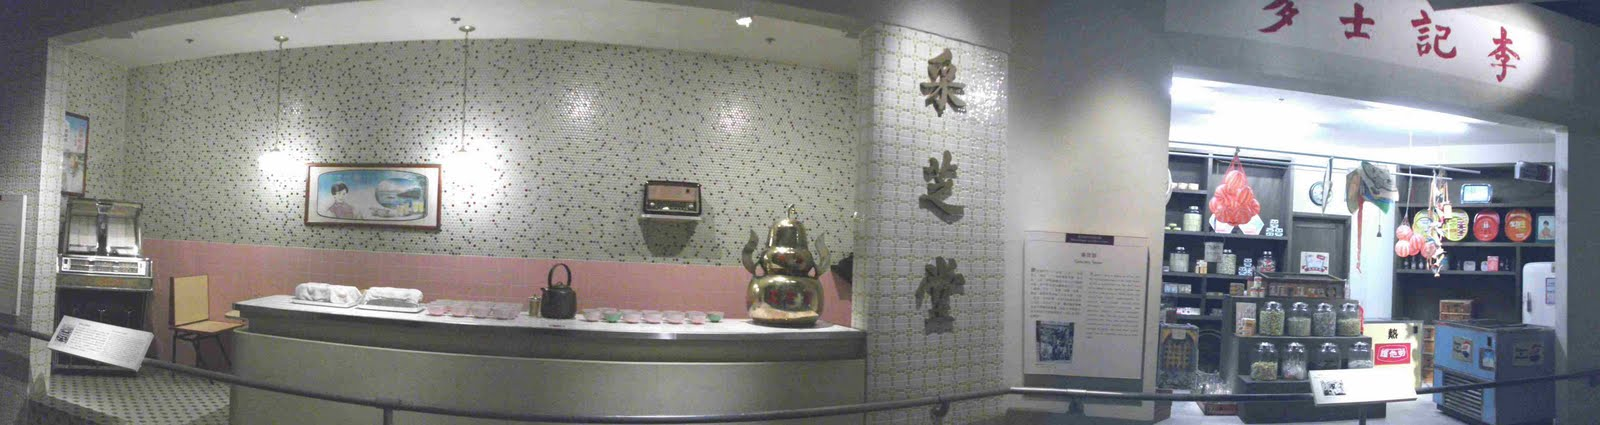 A typical HK teahouse and